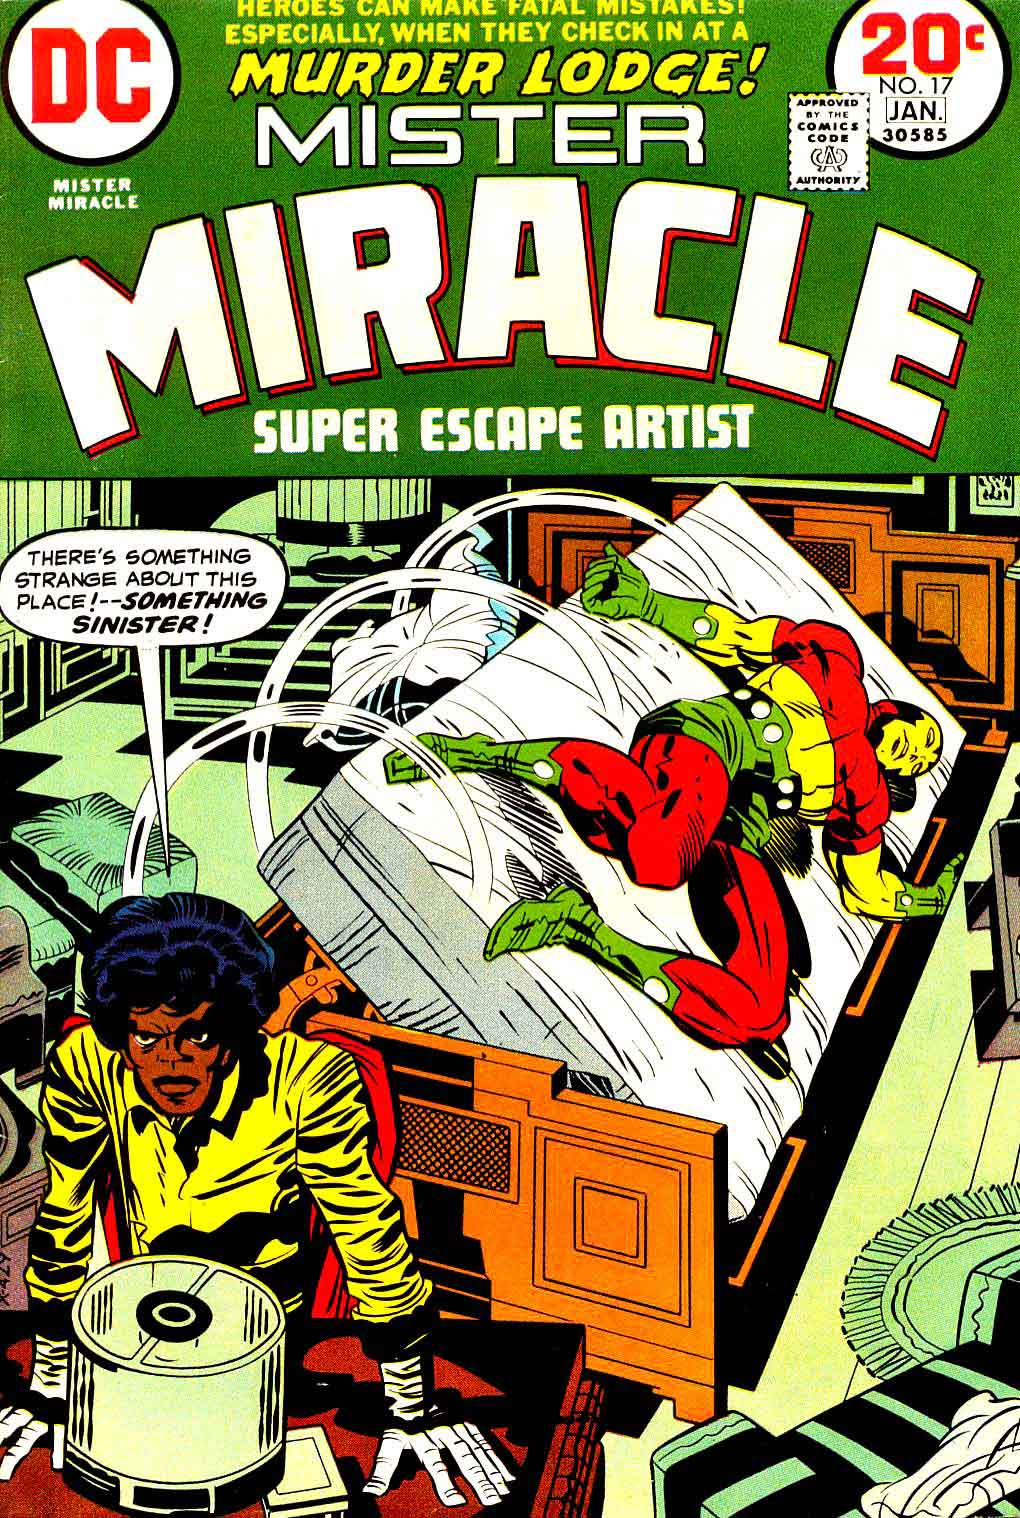 Mister Miracle v1 #17 dc bronze age comic book cover art by Jack Kirby